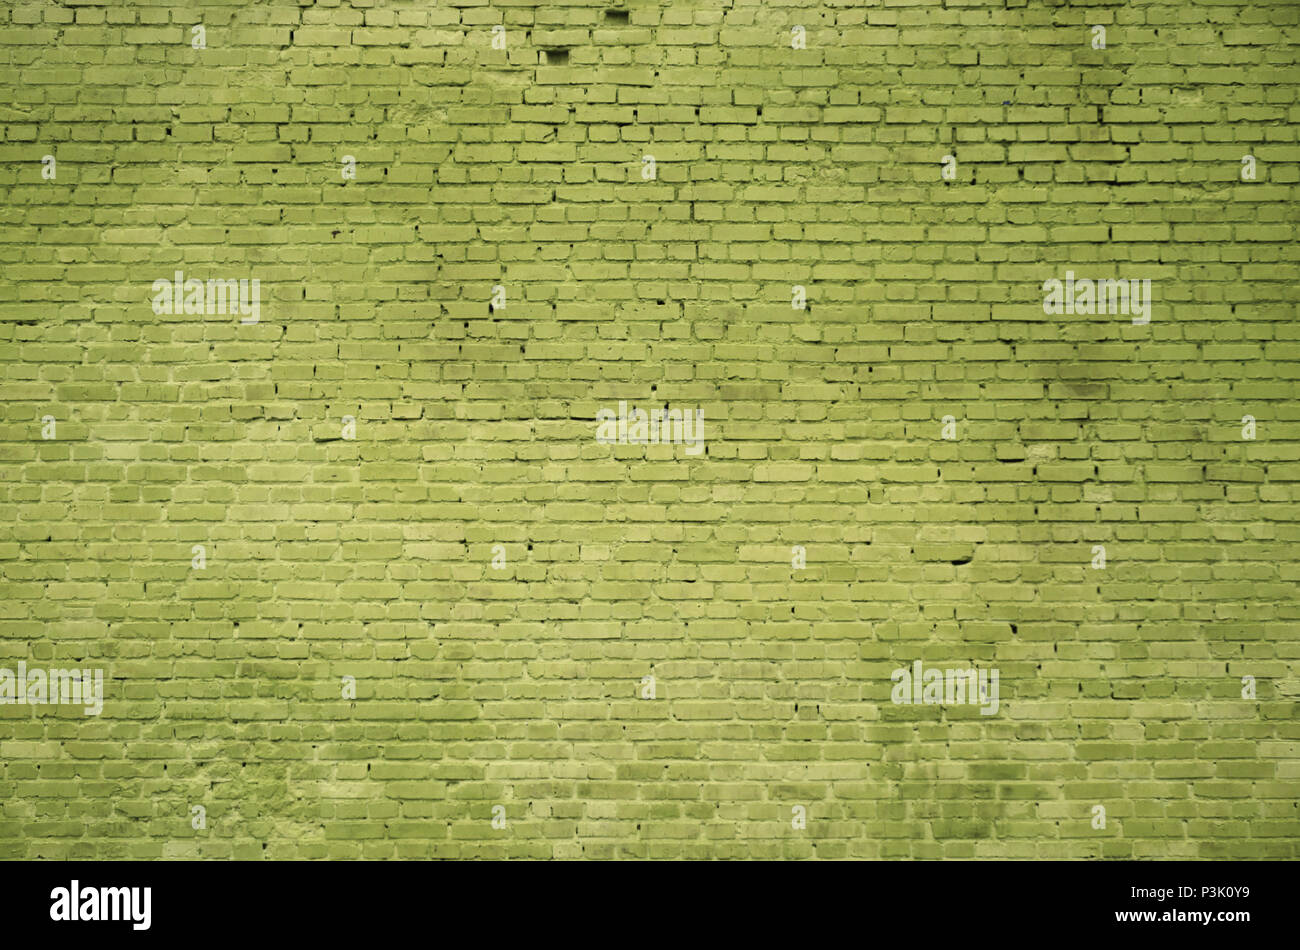 The texture of the brick wall of many rows of bricks painted in ...